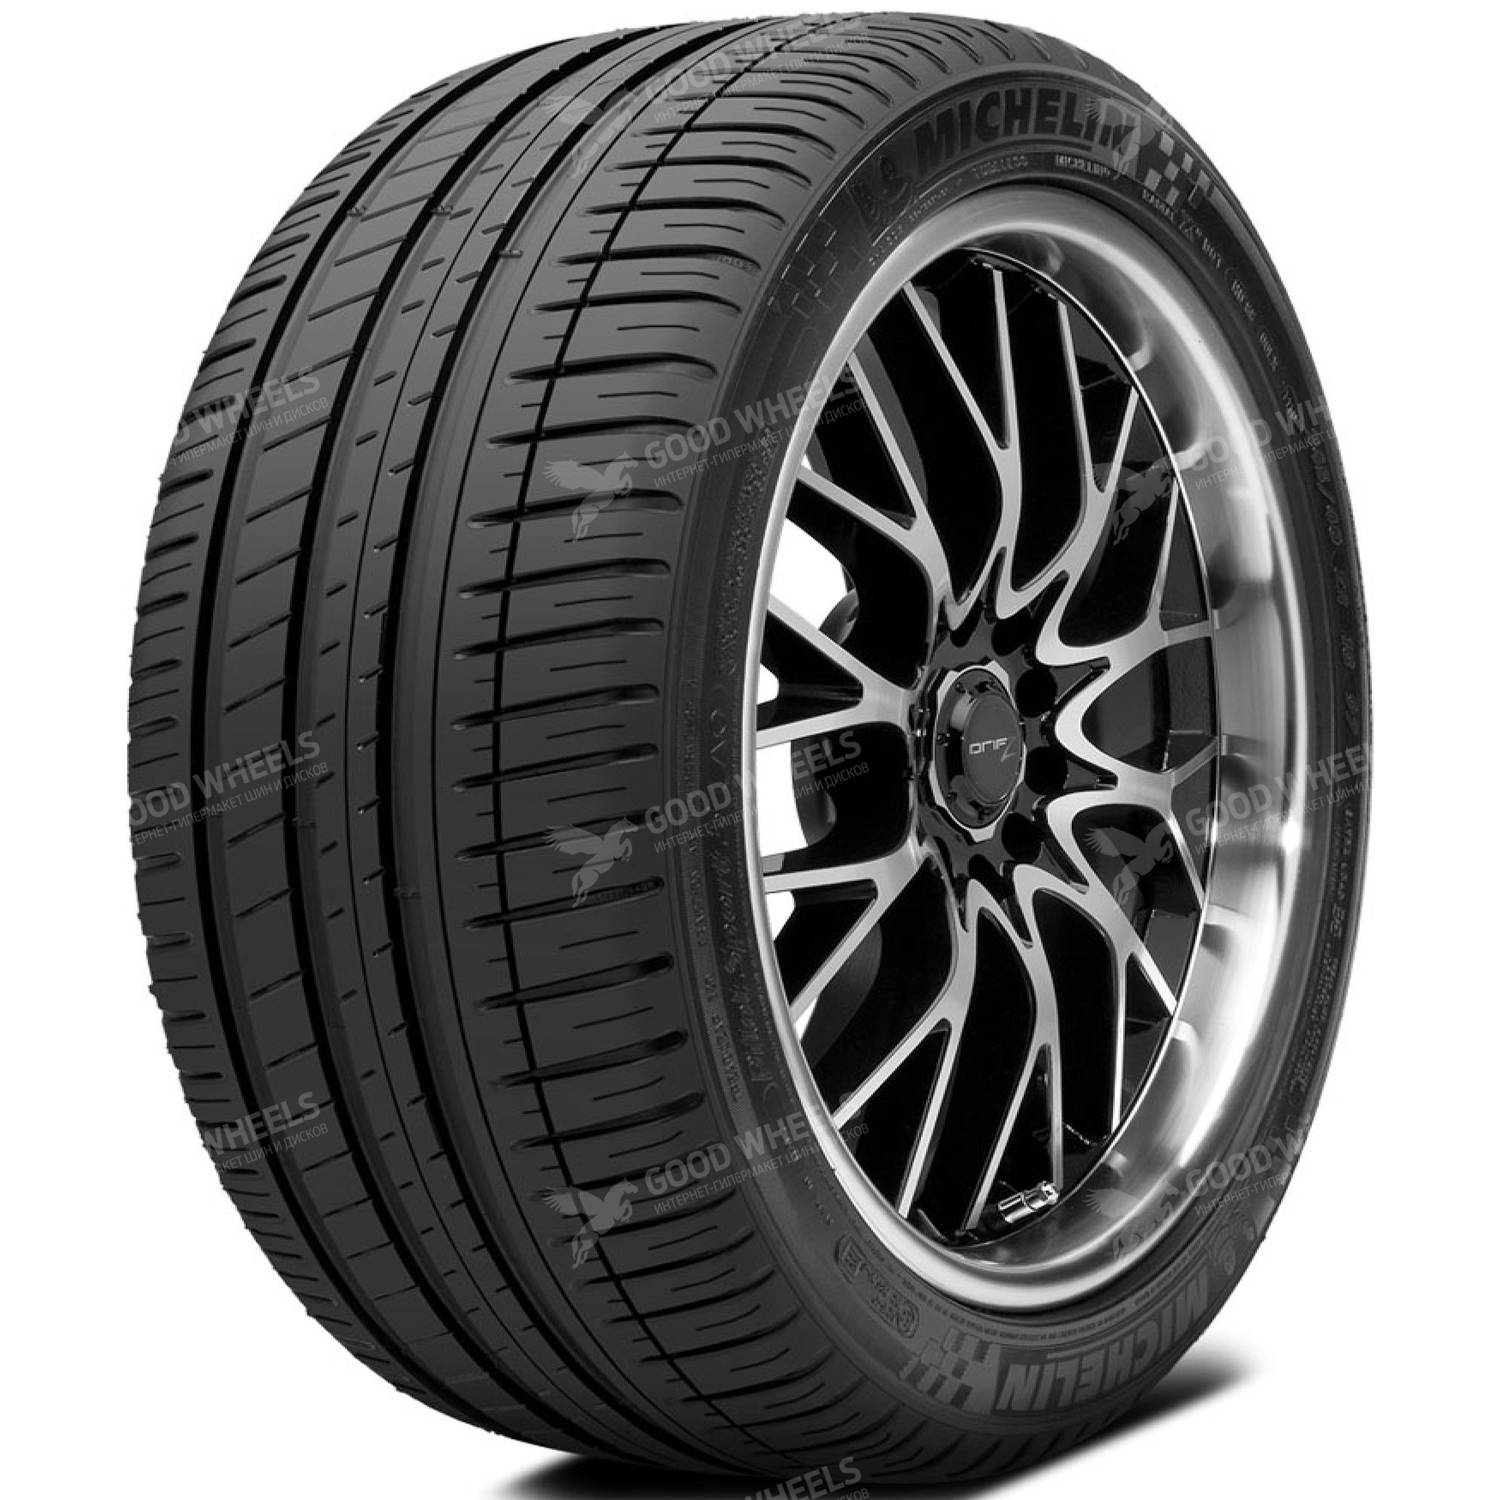 Michelin Pilot Sport 3 (PS3) 235/35 R19 91Y